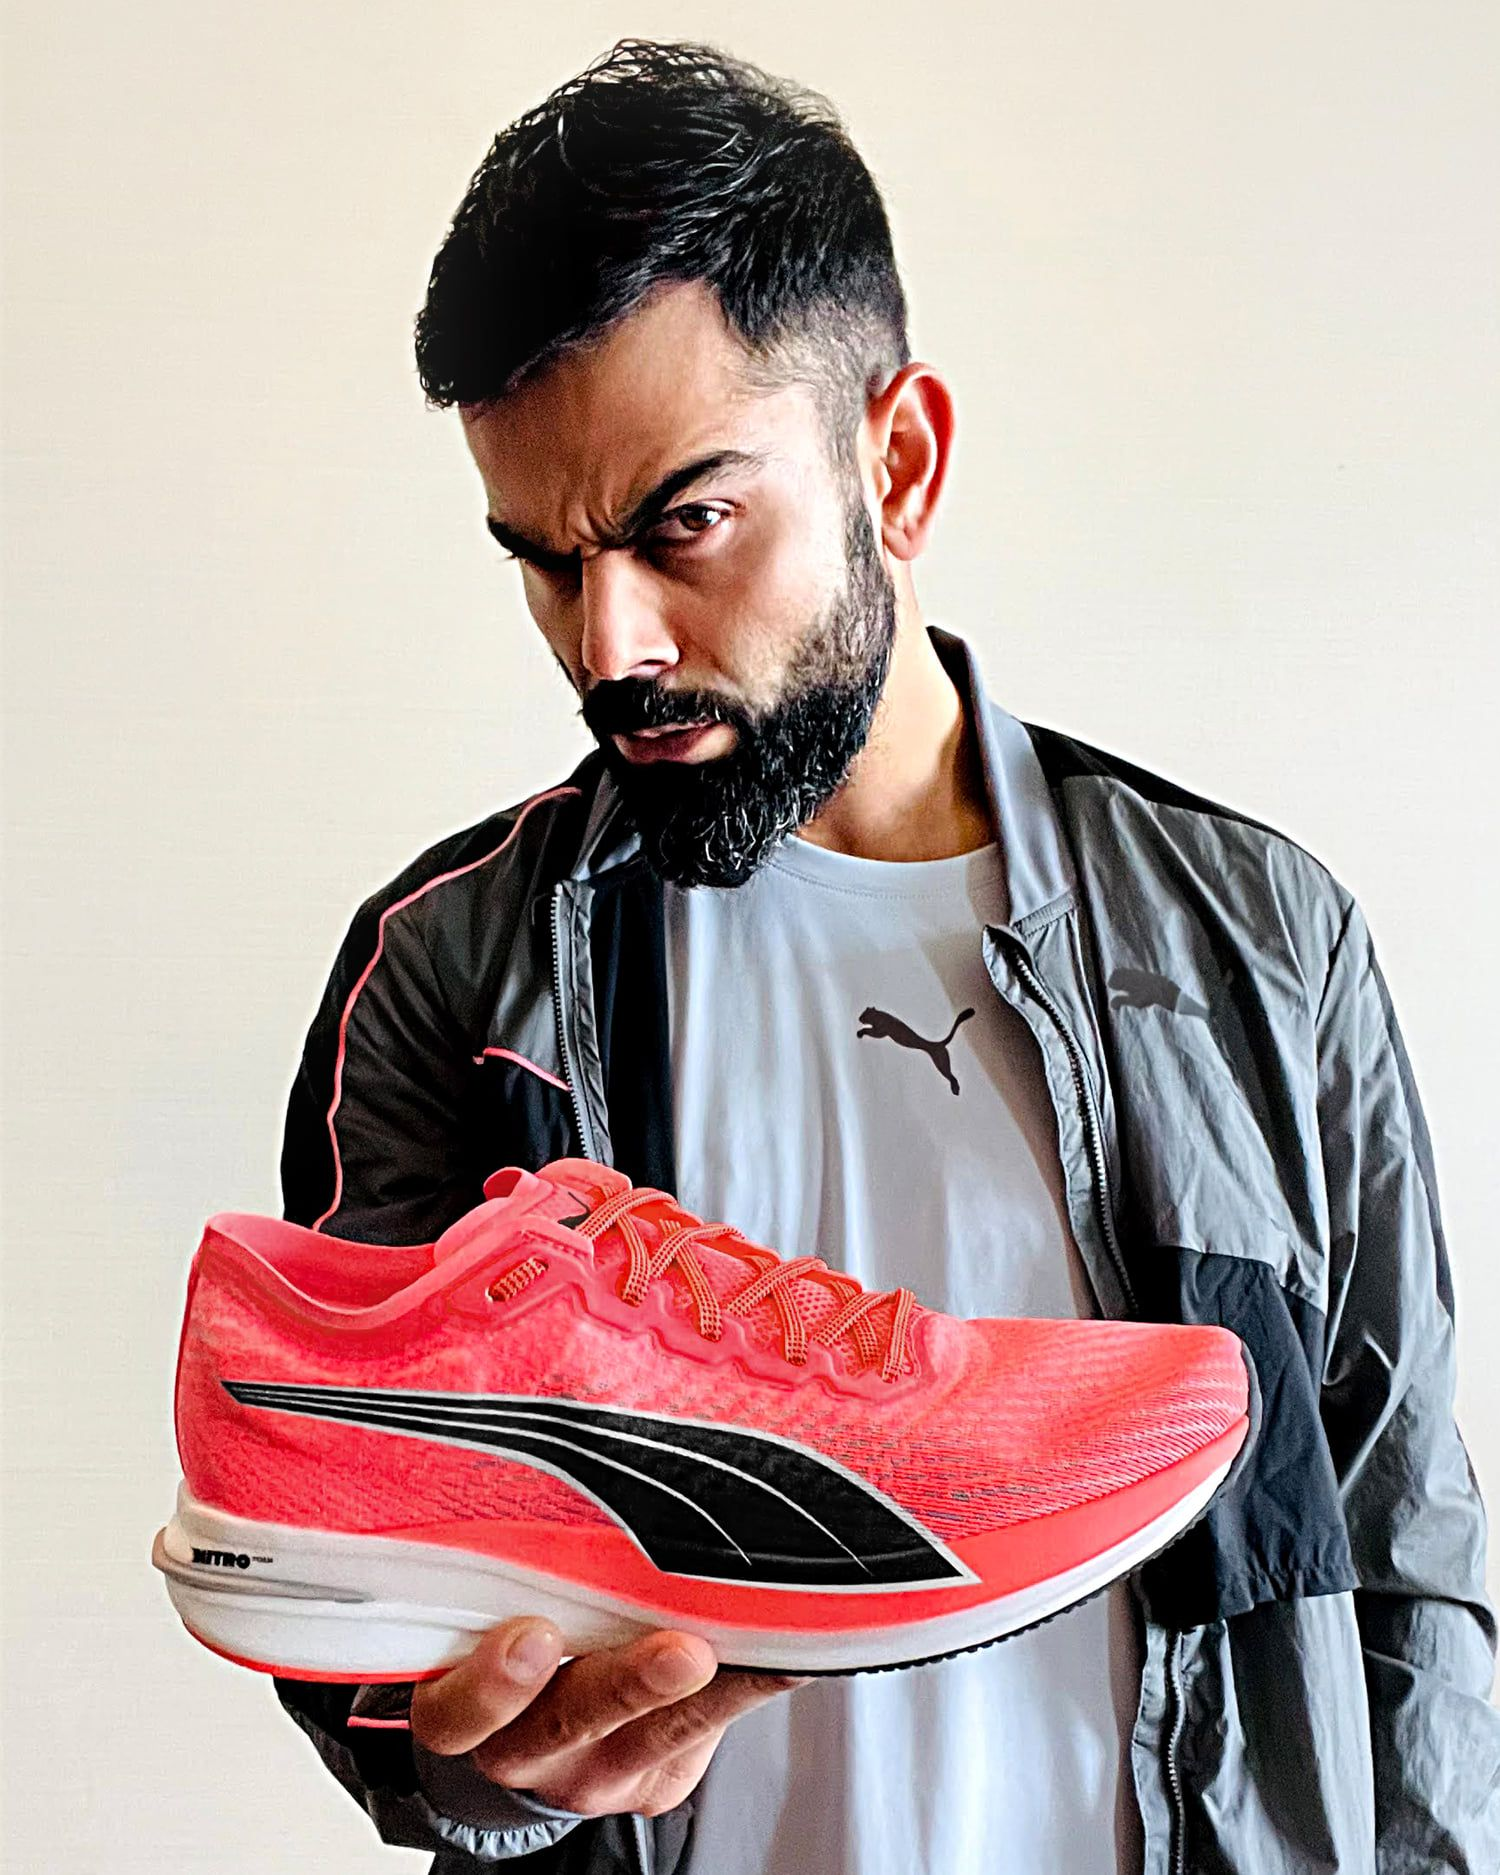 https://ciceroni.in/Services/images/EventGalleryImages/_Thumbnails/Puma__1745068158.jpg